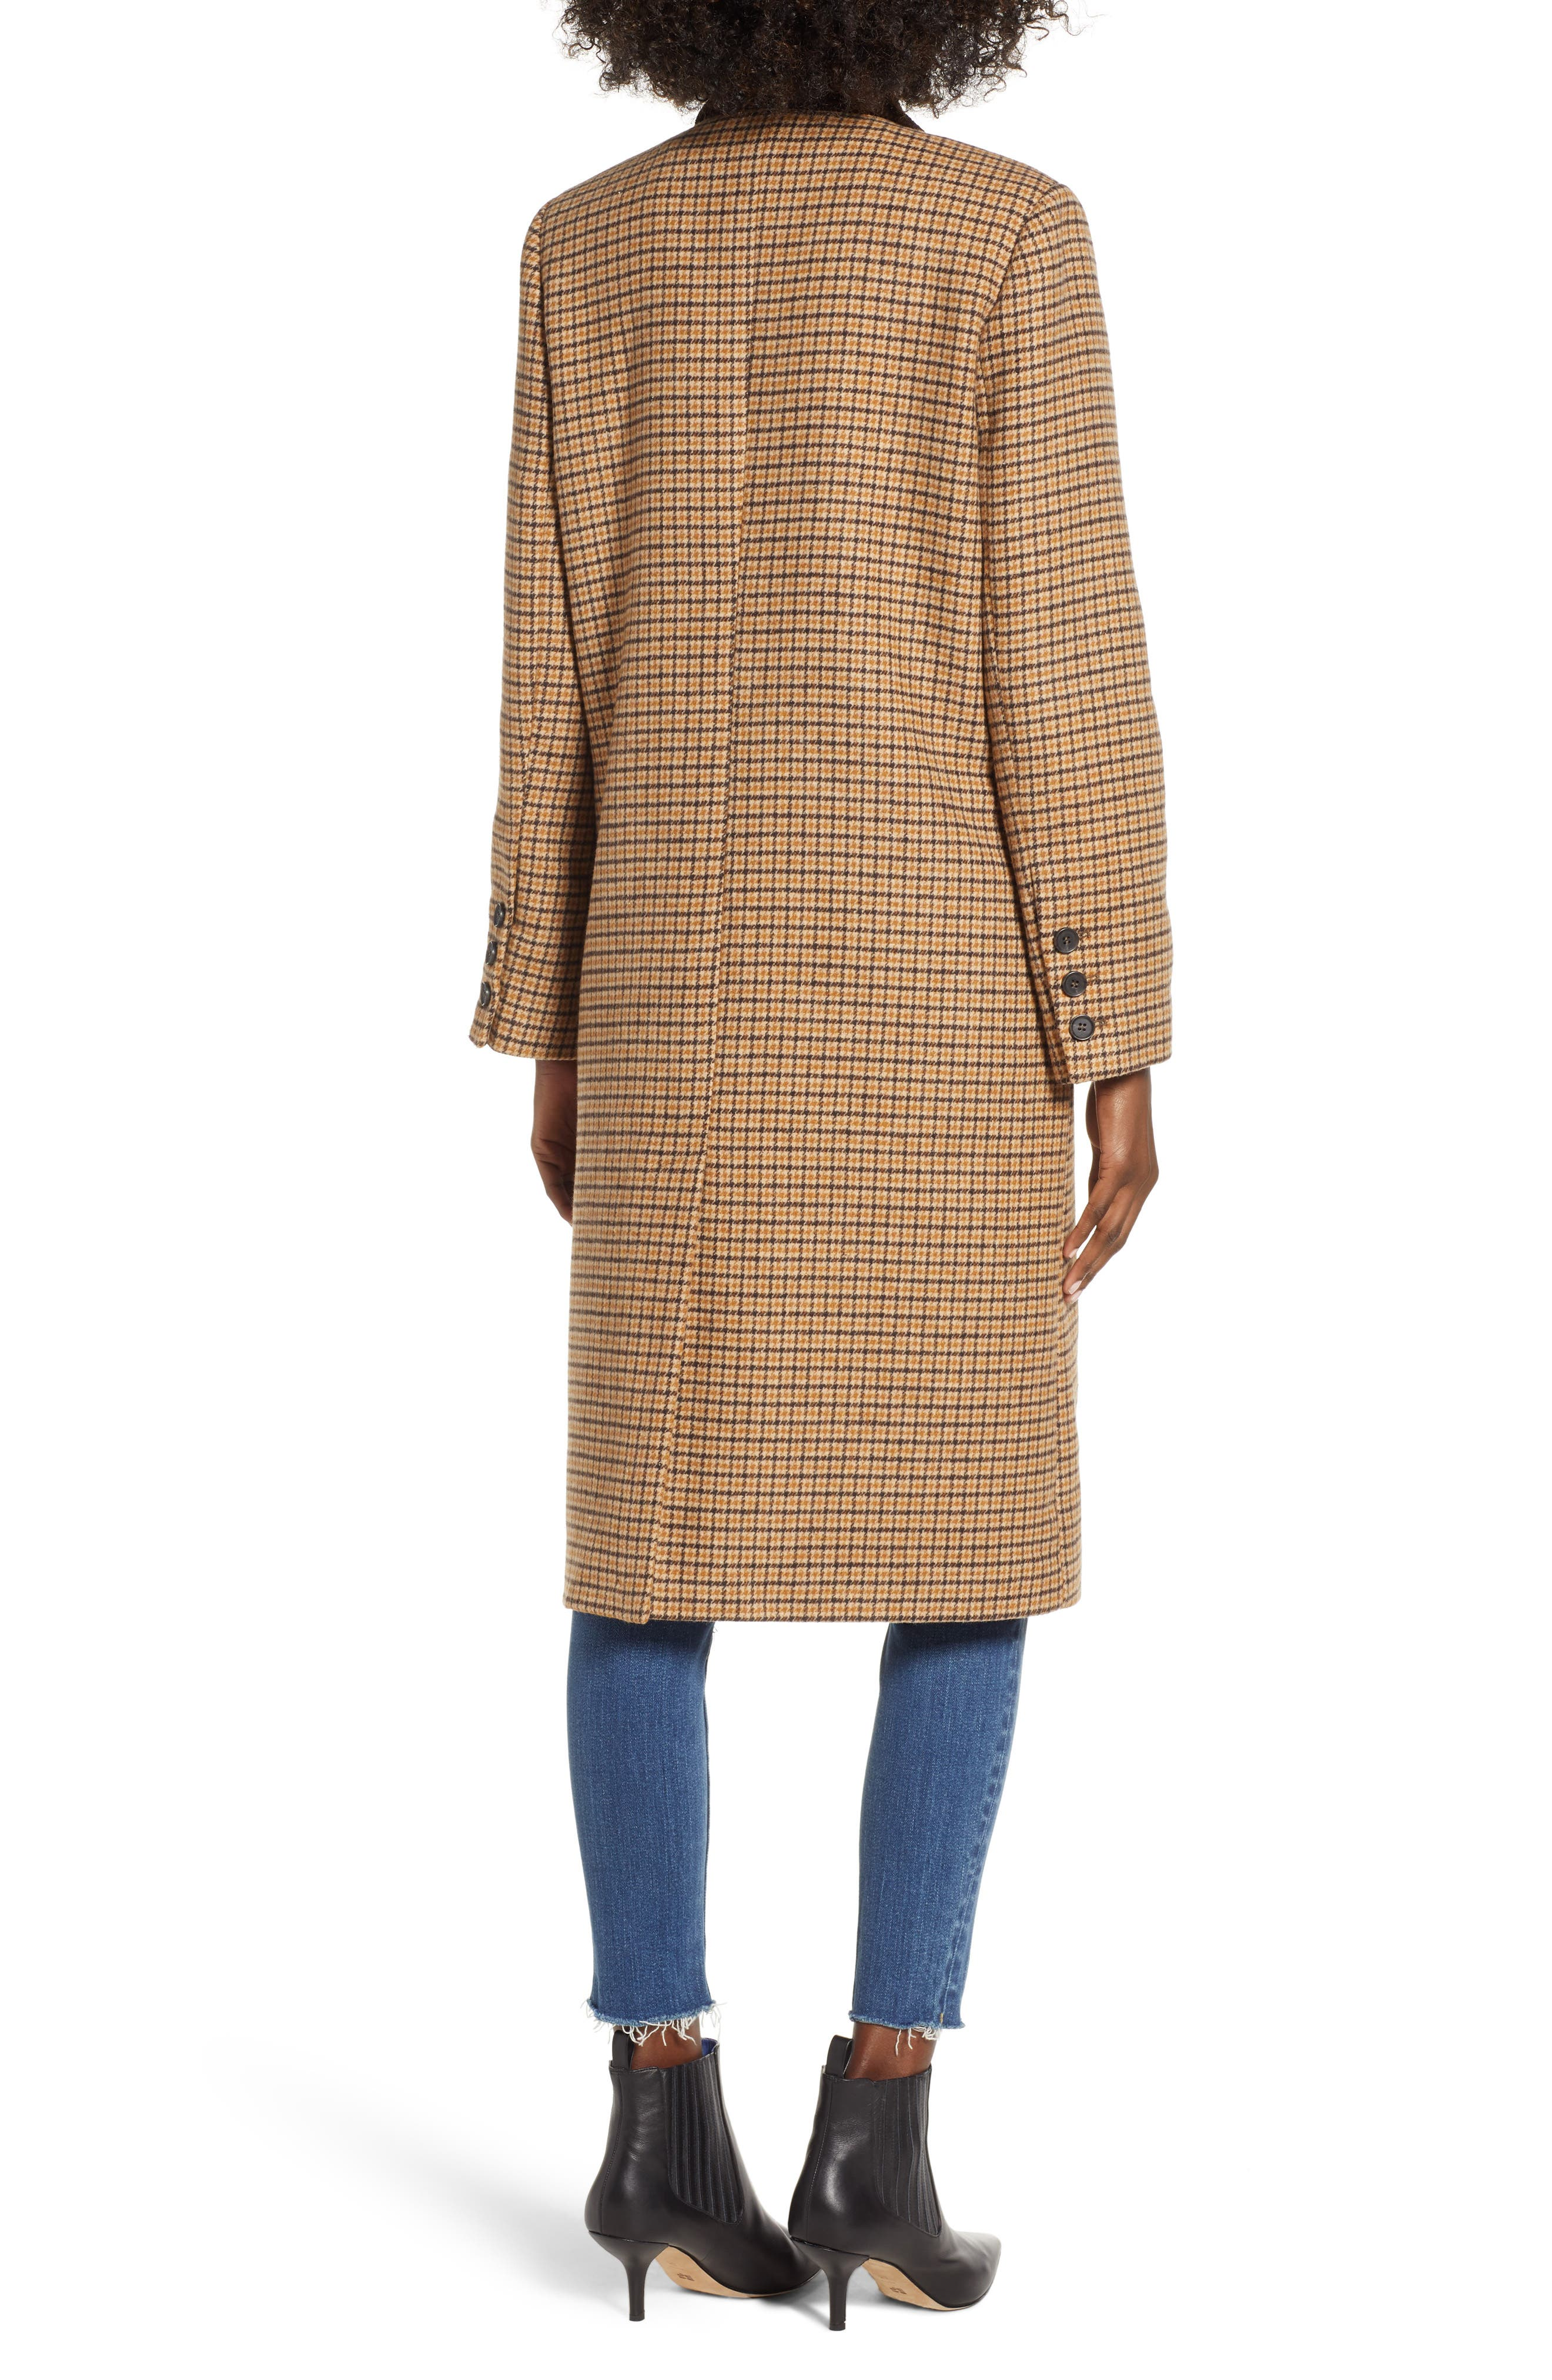 MOON RIVER,                             Houndstooth Double Breasted COat,                             Alternate thumbnail 2, color,                             BROWN PLAID